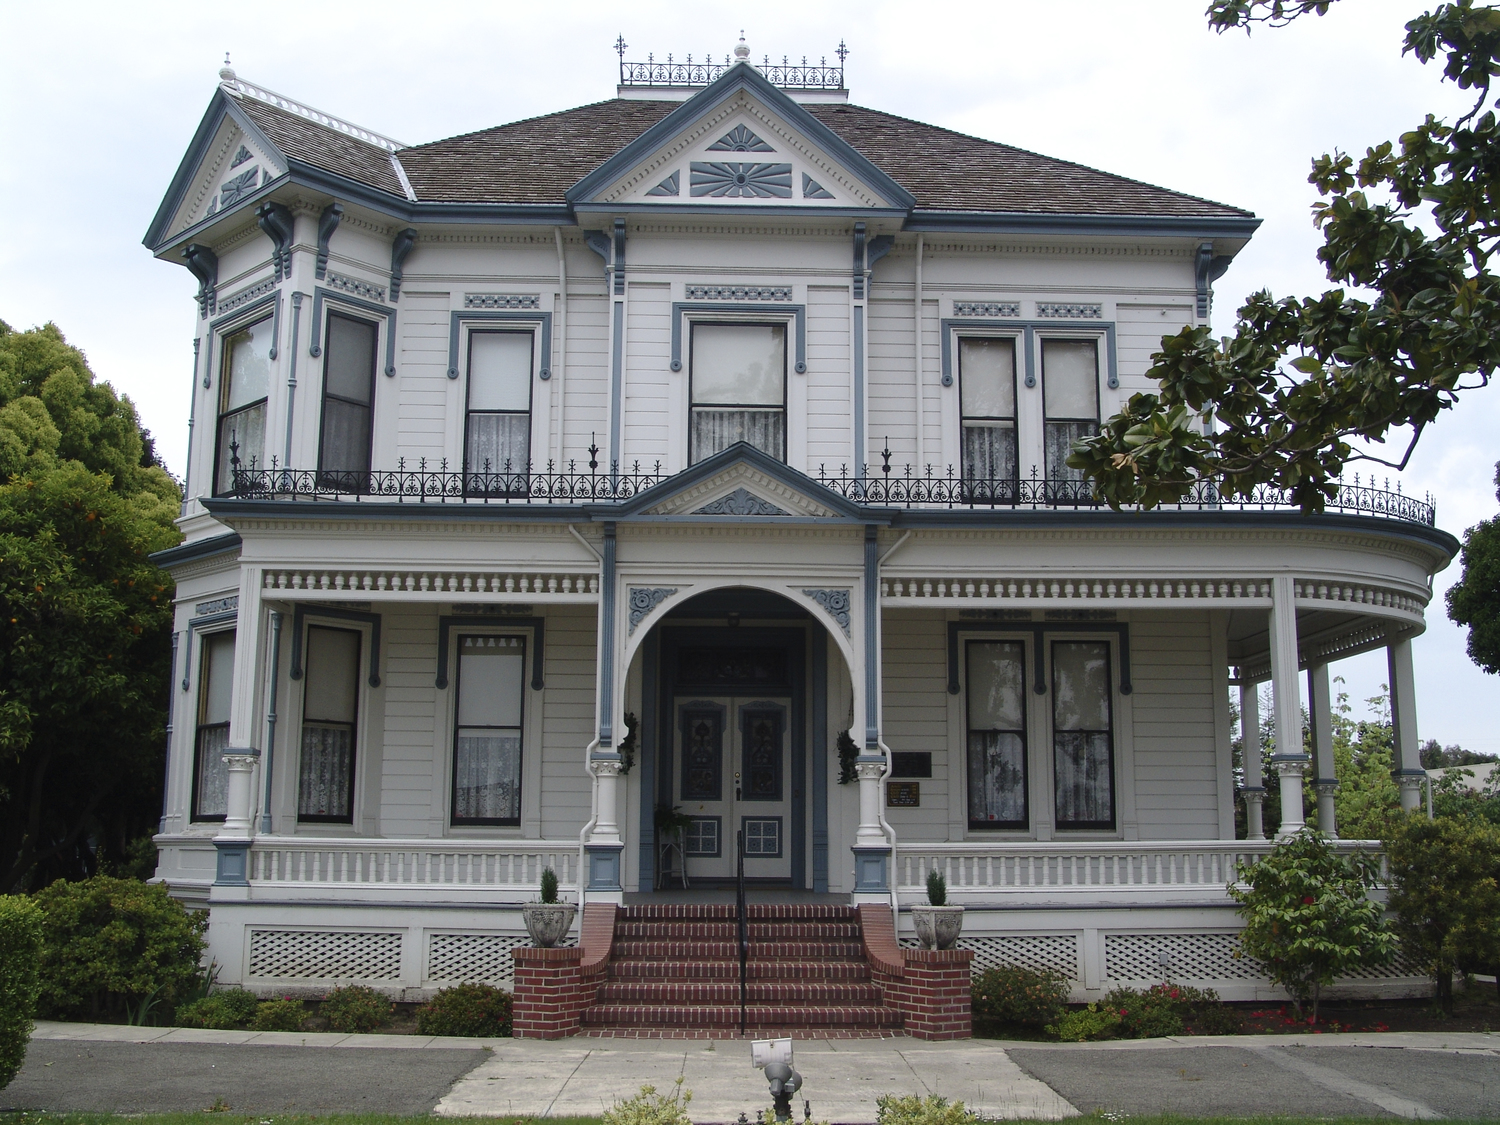 A recent photograph of the McConaghy House--an East Bay examplar of the Stick-Eastlake architectural style (HAHS).